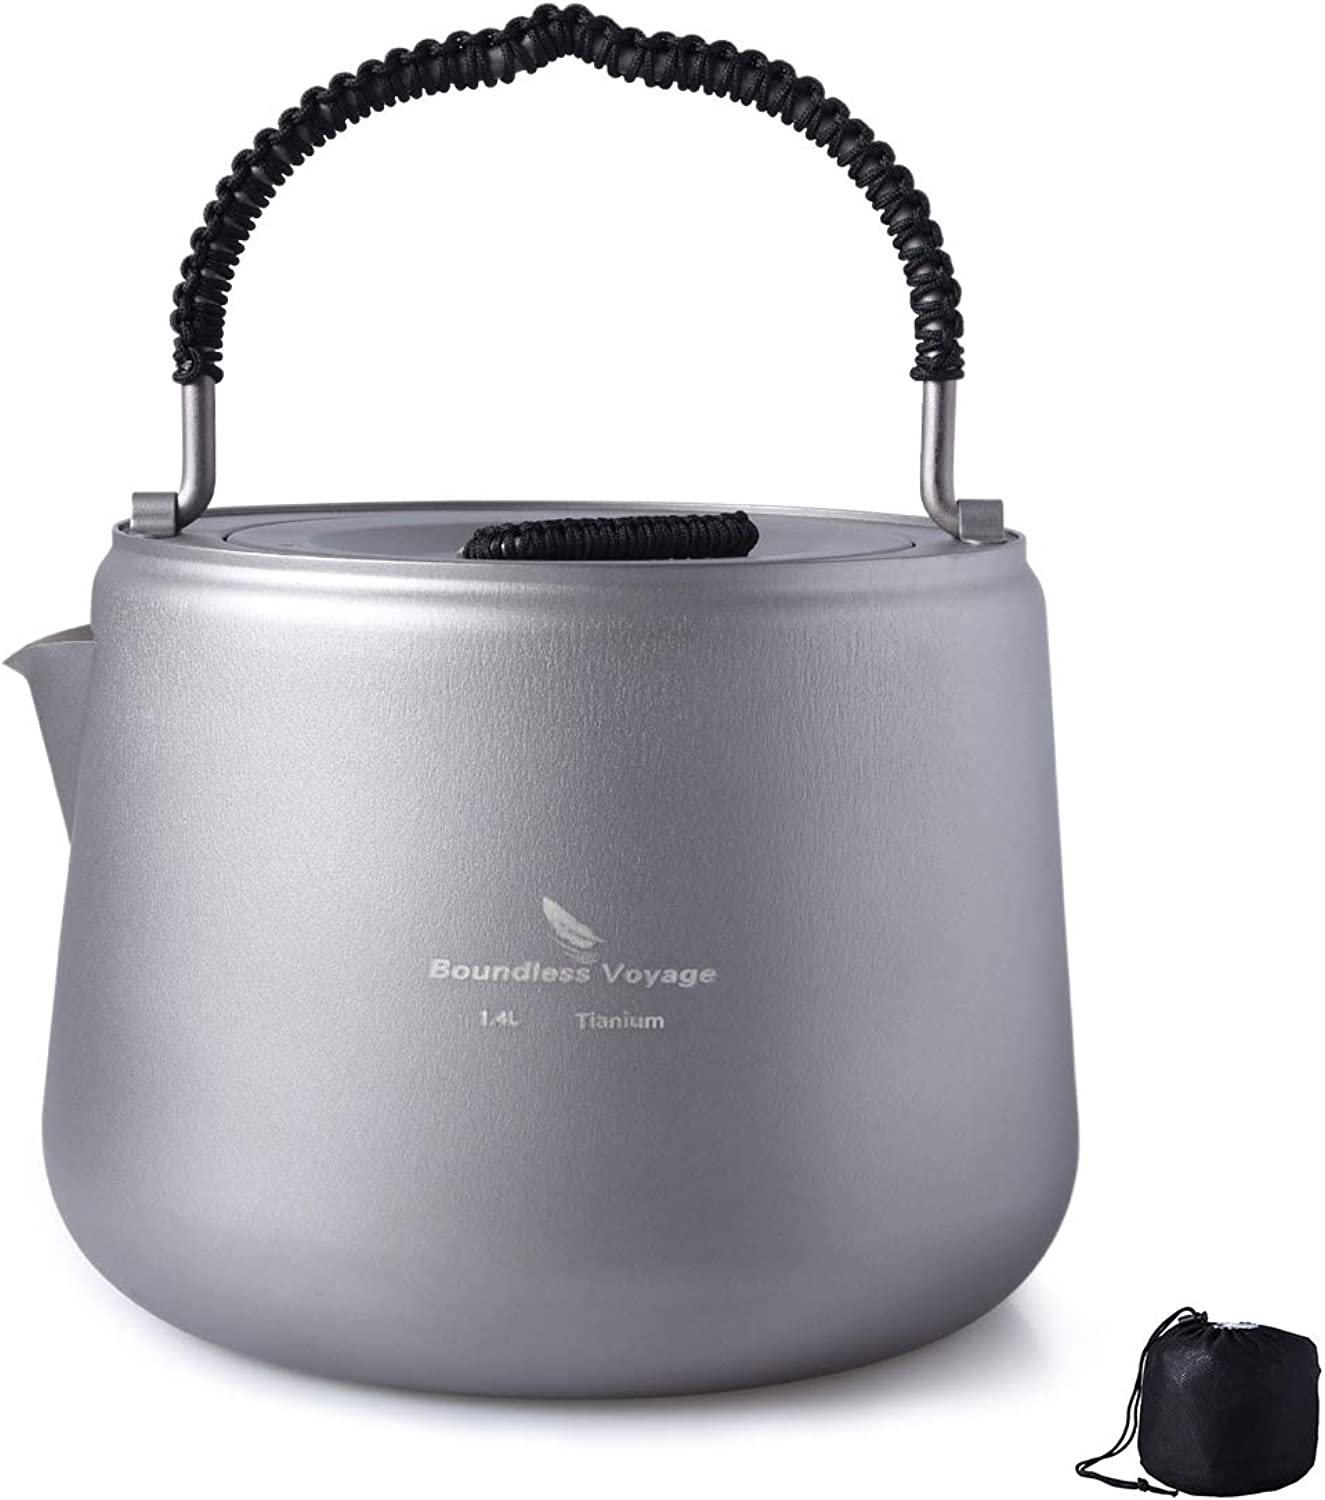 Boundless Voyage Titanium Kettle, 1.4L Lightweight Coffee Tea Water Kettle with Filter and Anti-scalding Handle Lid Suitable Induction Cooker for Outdoor Camping Hiking Climbing Ti1584B